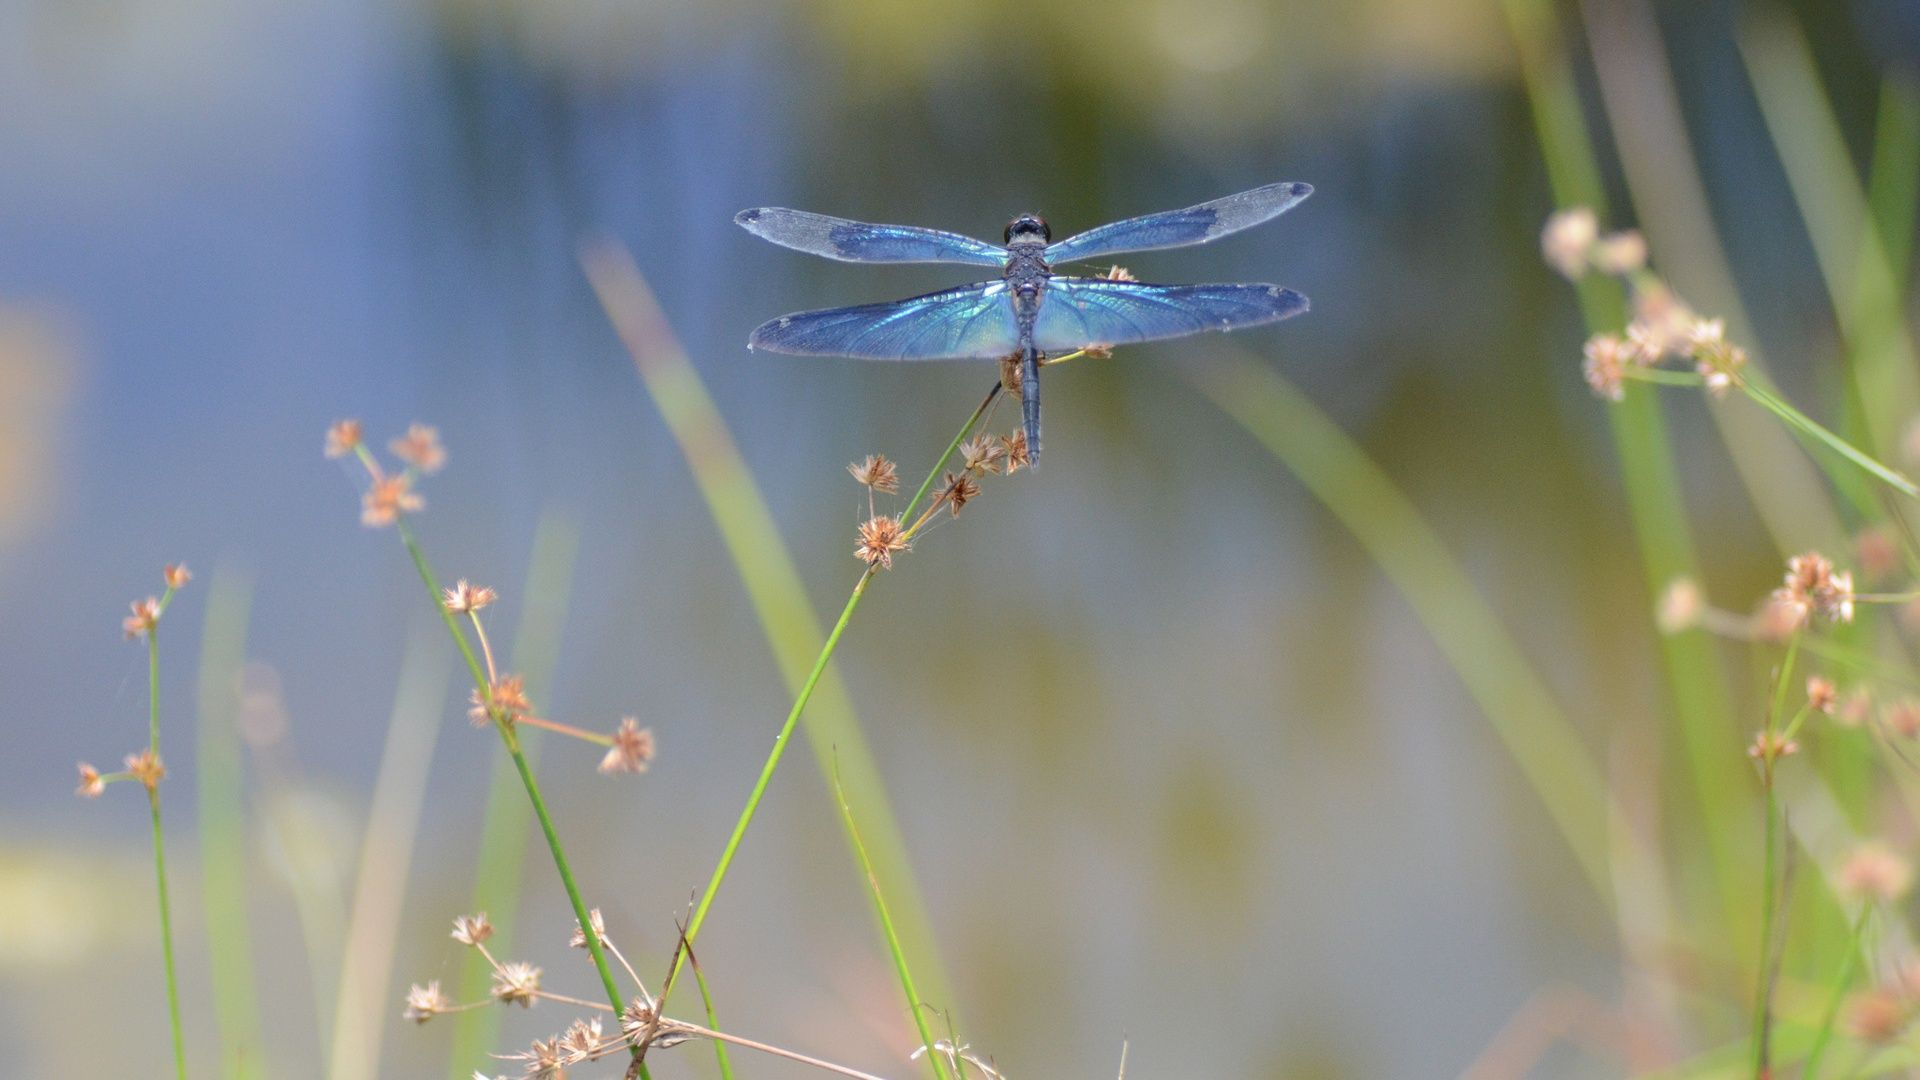 Dragonfly Images Best Dragonfly Wallpapers In High Quality 1024 640 Dragonfly Backgrounds 32 Wallp Dragonfly Photography Dragonfly Images Dragonfly Wallpaper